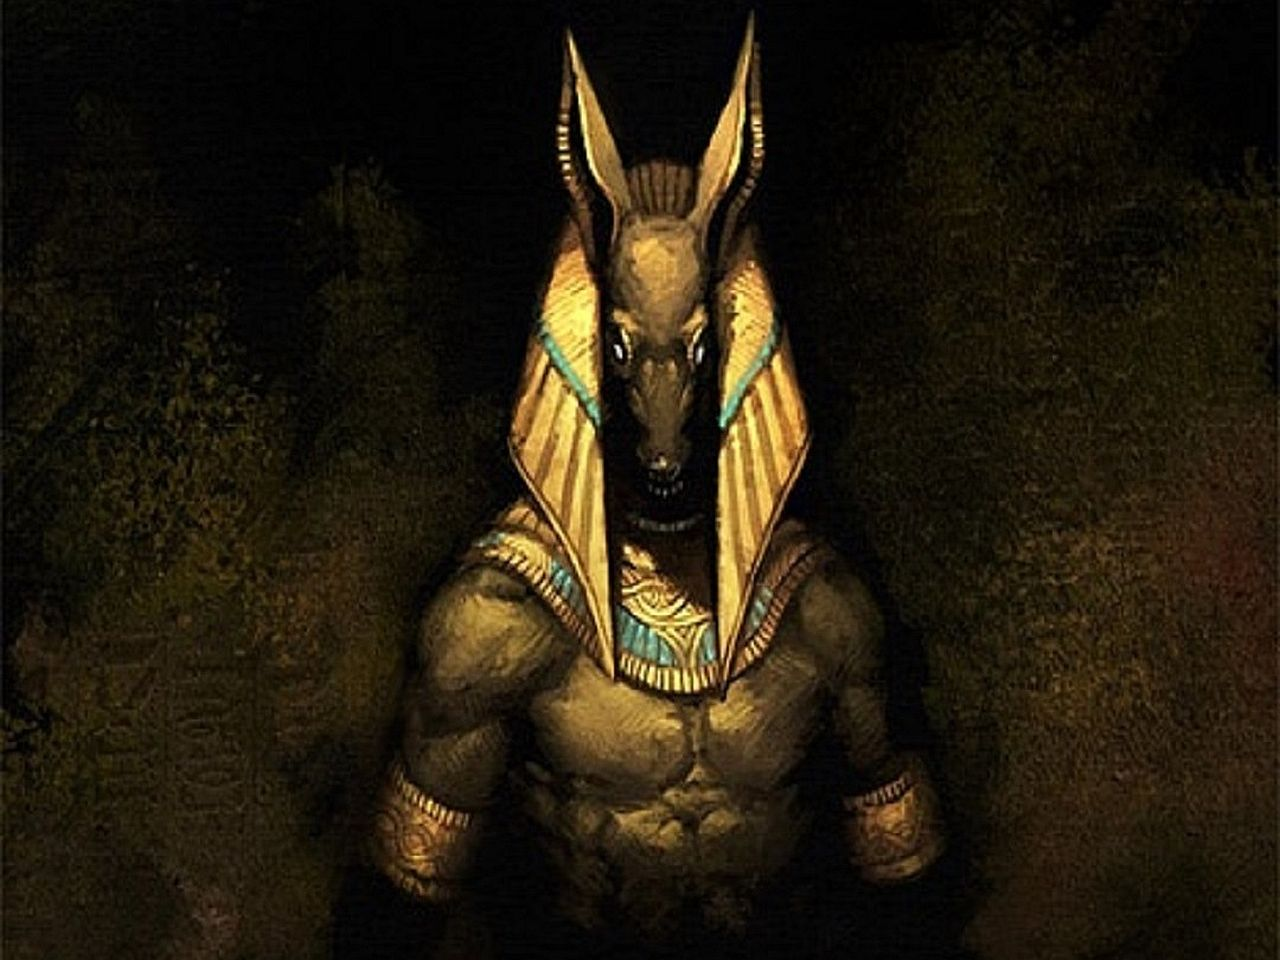 1280x960 Anubis Wallpaper and Background Image | 1280x960 | ID:440519